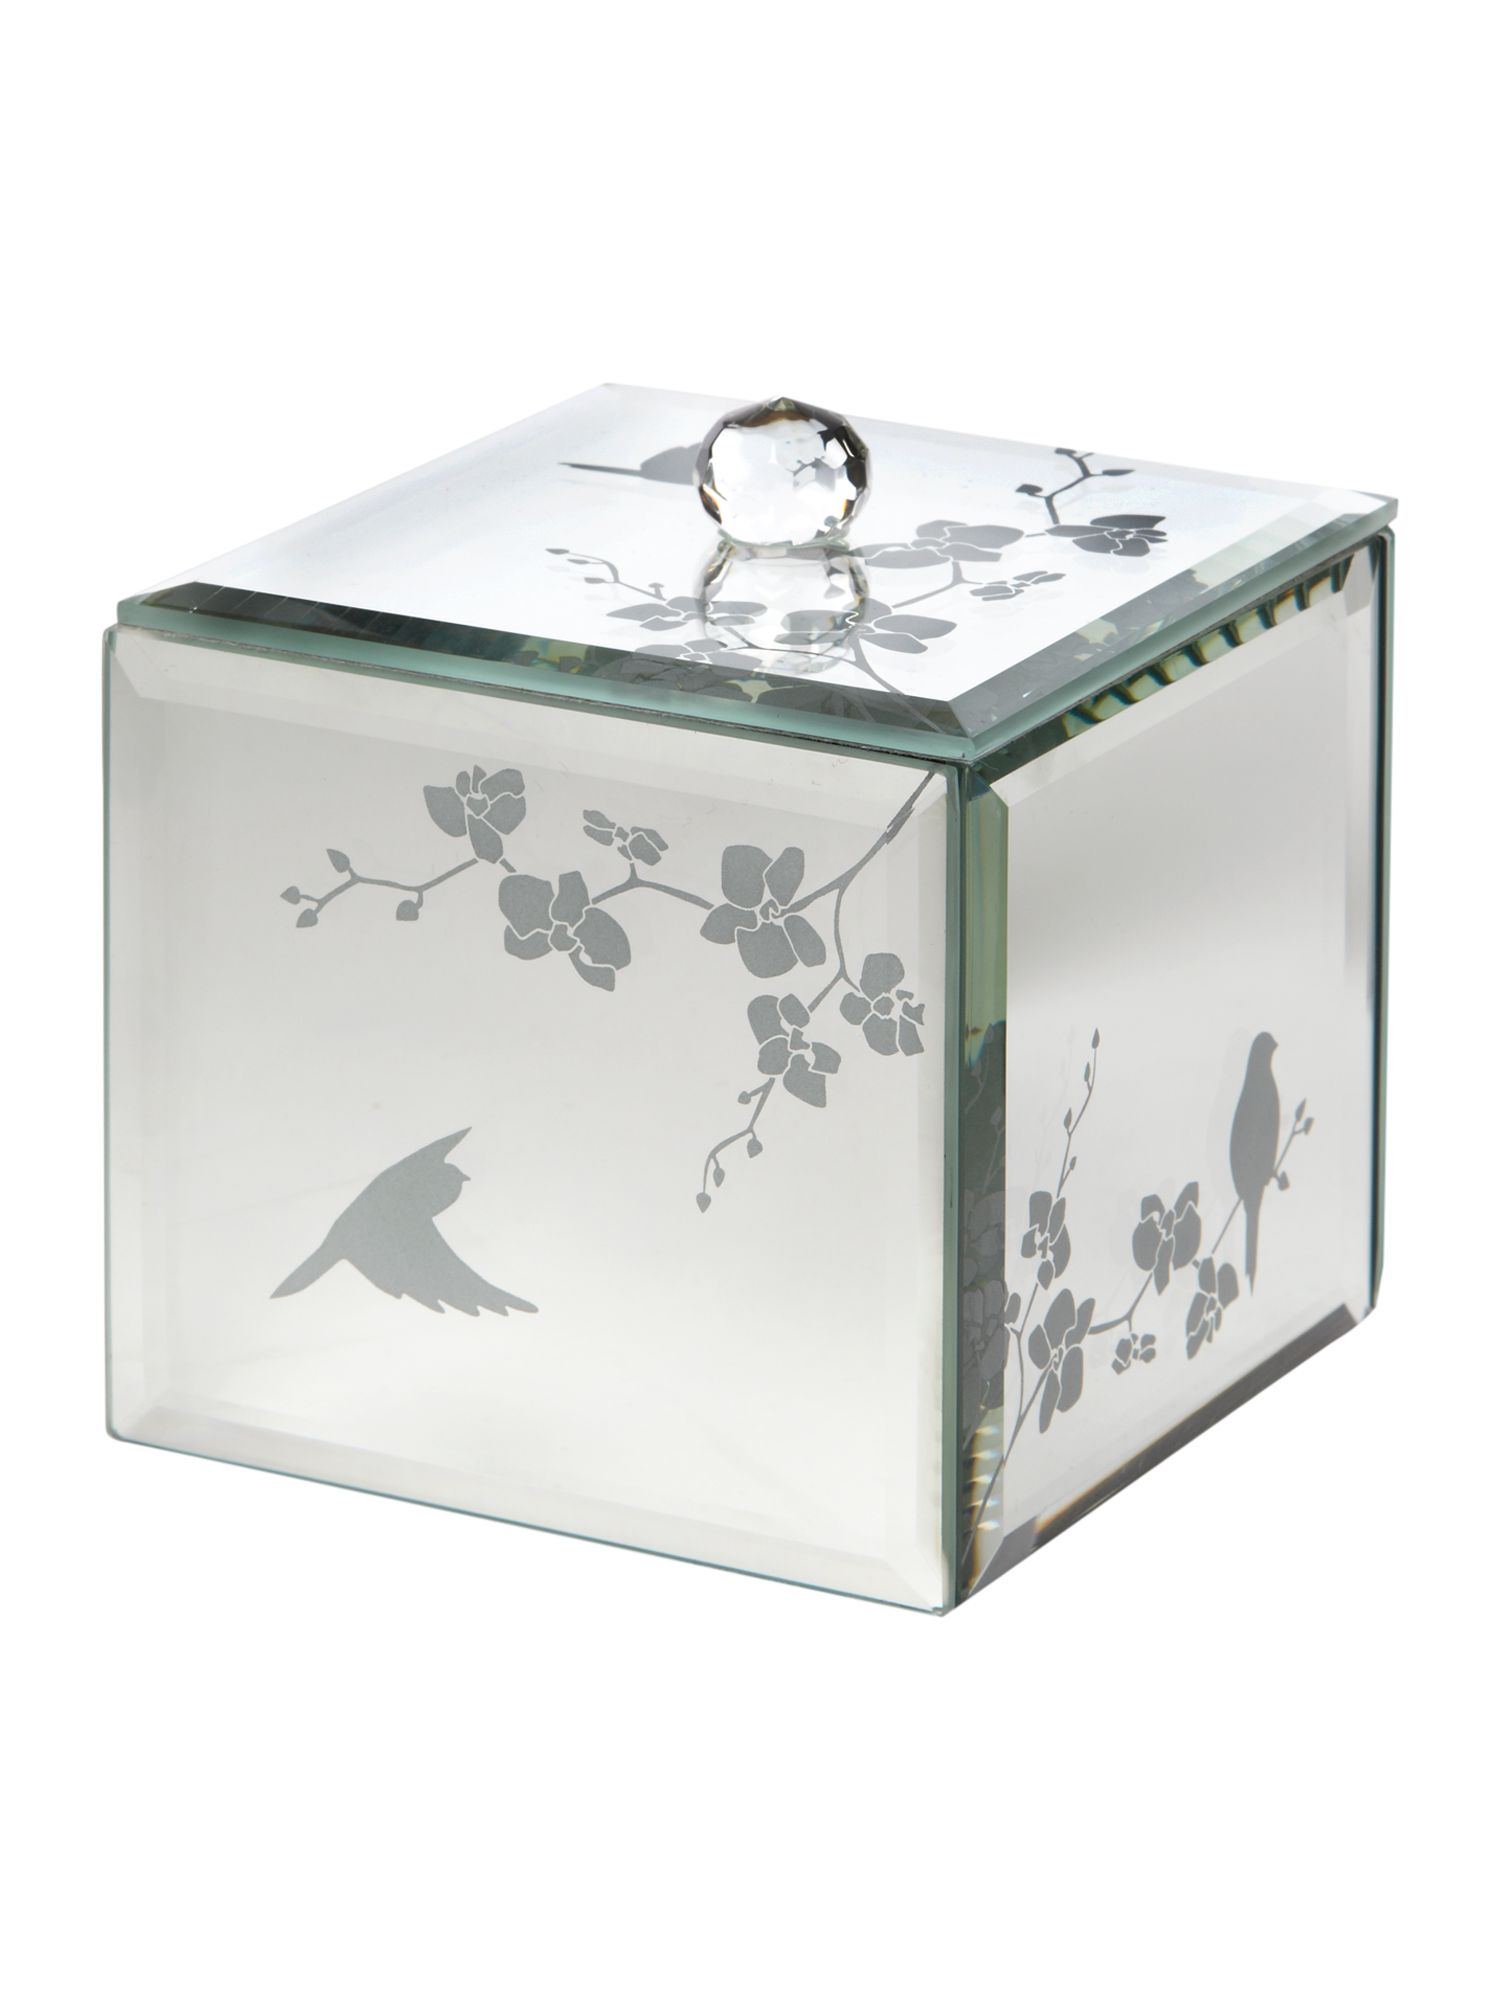 Mirrored trinket box